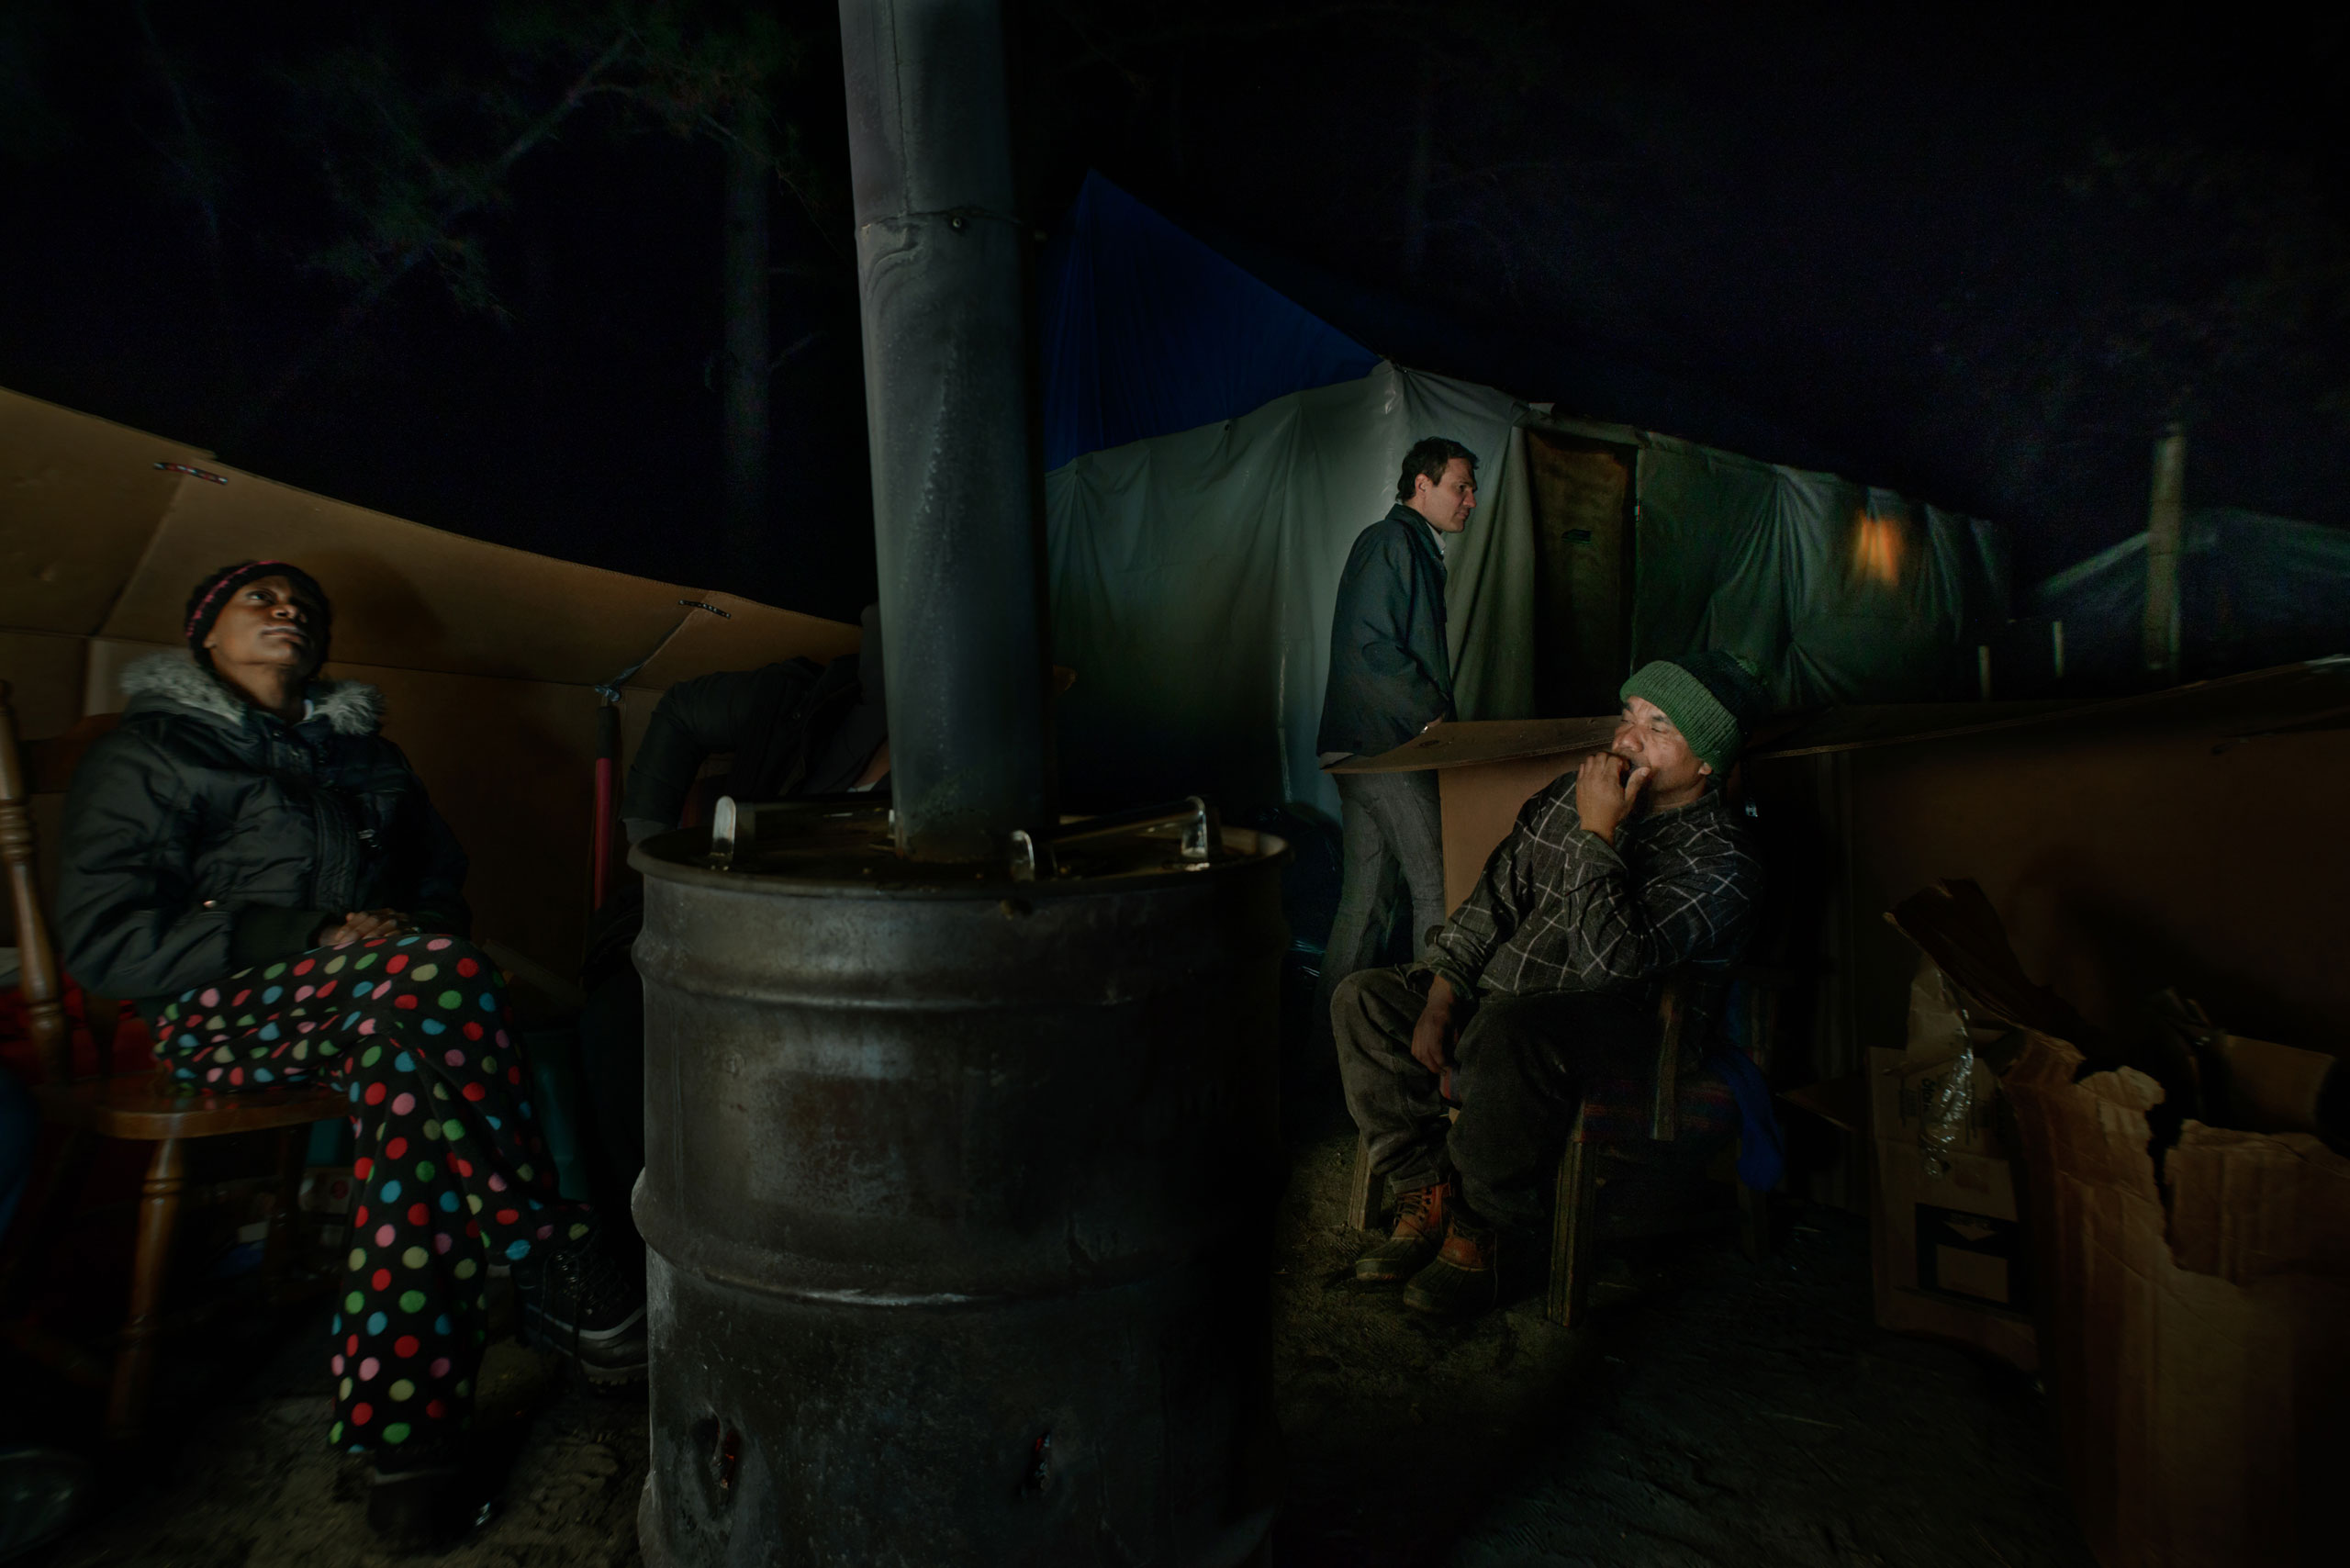 Rev. Steve Brigham, the self-appointed spokesperson for Tent City, heads to the chapel while Eve and Arek star gaze around the fire, March 8, 2014.